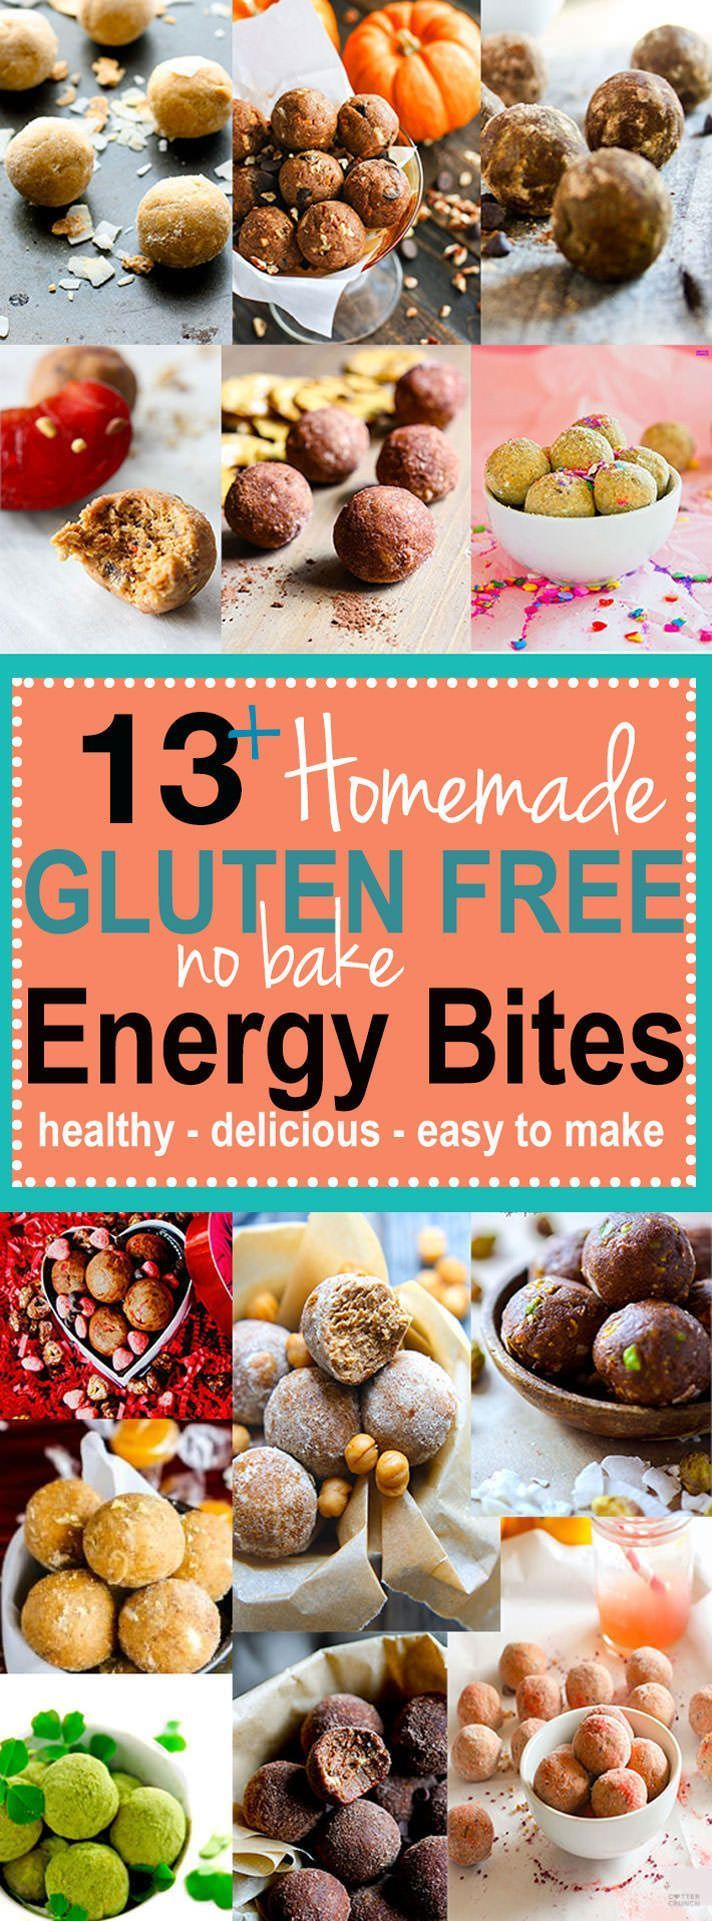 Best of Healthy Bites 2015 - DELISH Gluten Free NO BAKE Energy Bites!  all gluten free, full of flavor, easy homemade, and HEALTHY!! Fun Recipe round up to save for when your sweet tooth hits or you need healthy gluten free fuel.  Paleo and Vegan options!